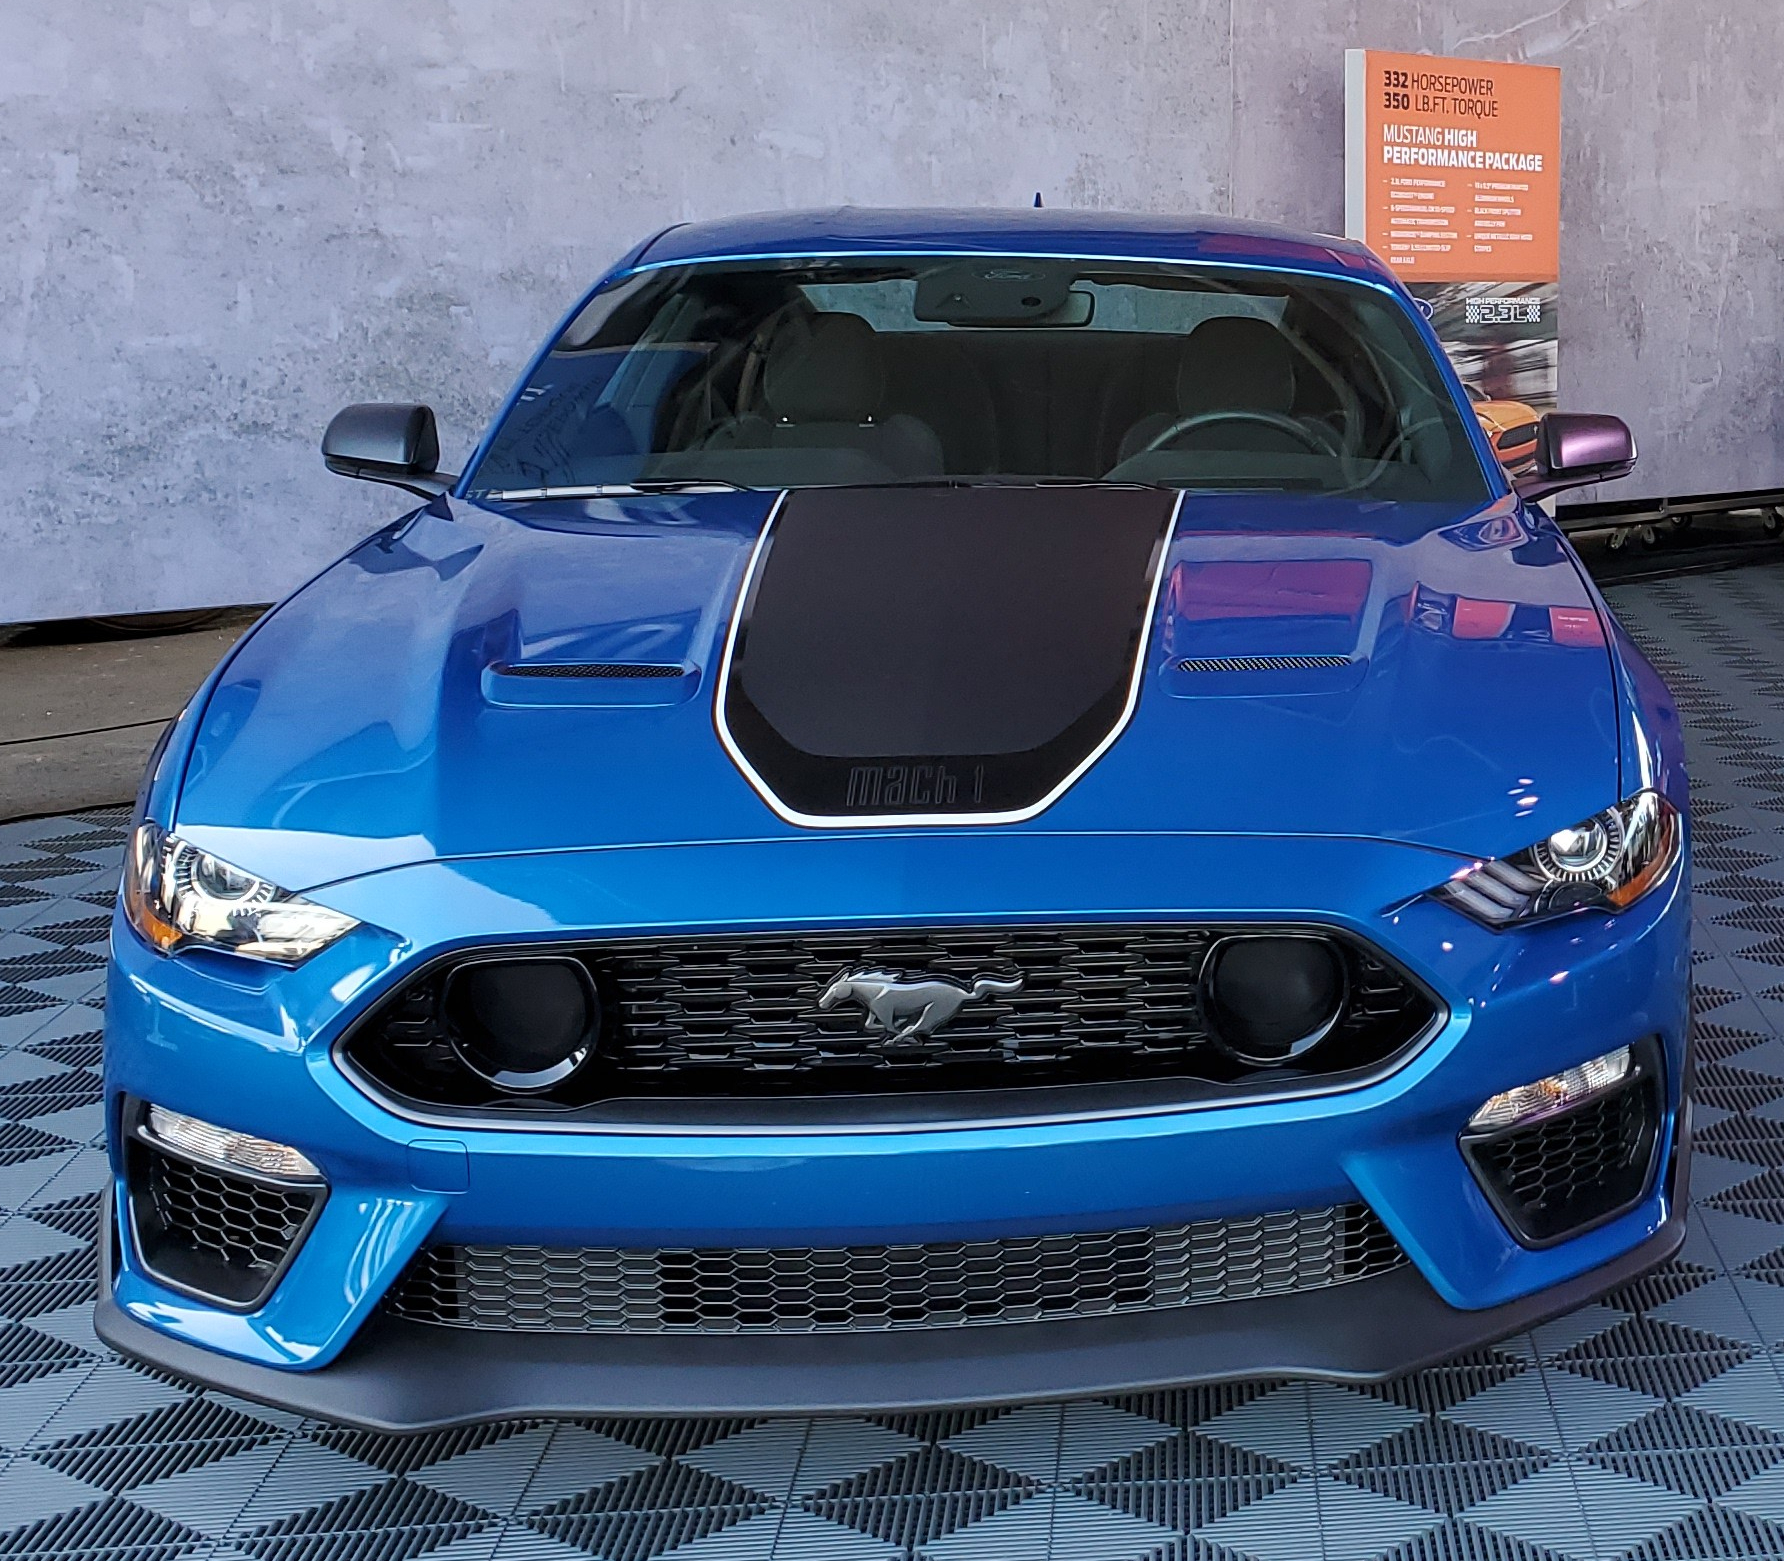 The 2021 Mach1 Mustang from Ford on display a the 2020 SHELBY GT 500 North American Track Tour in Charlotte NC